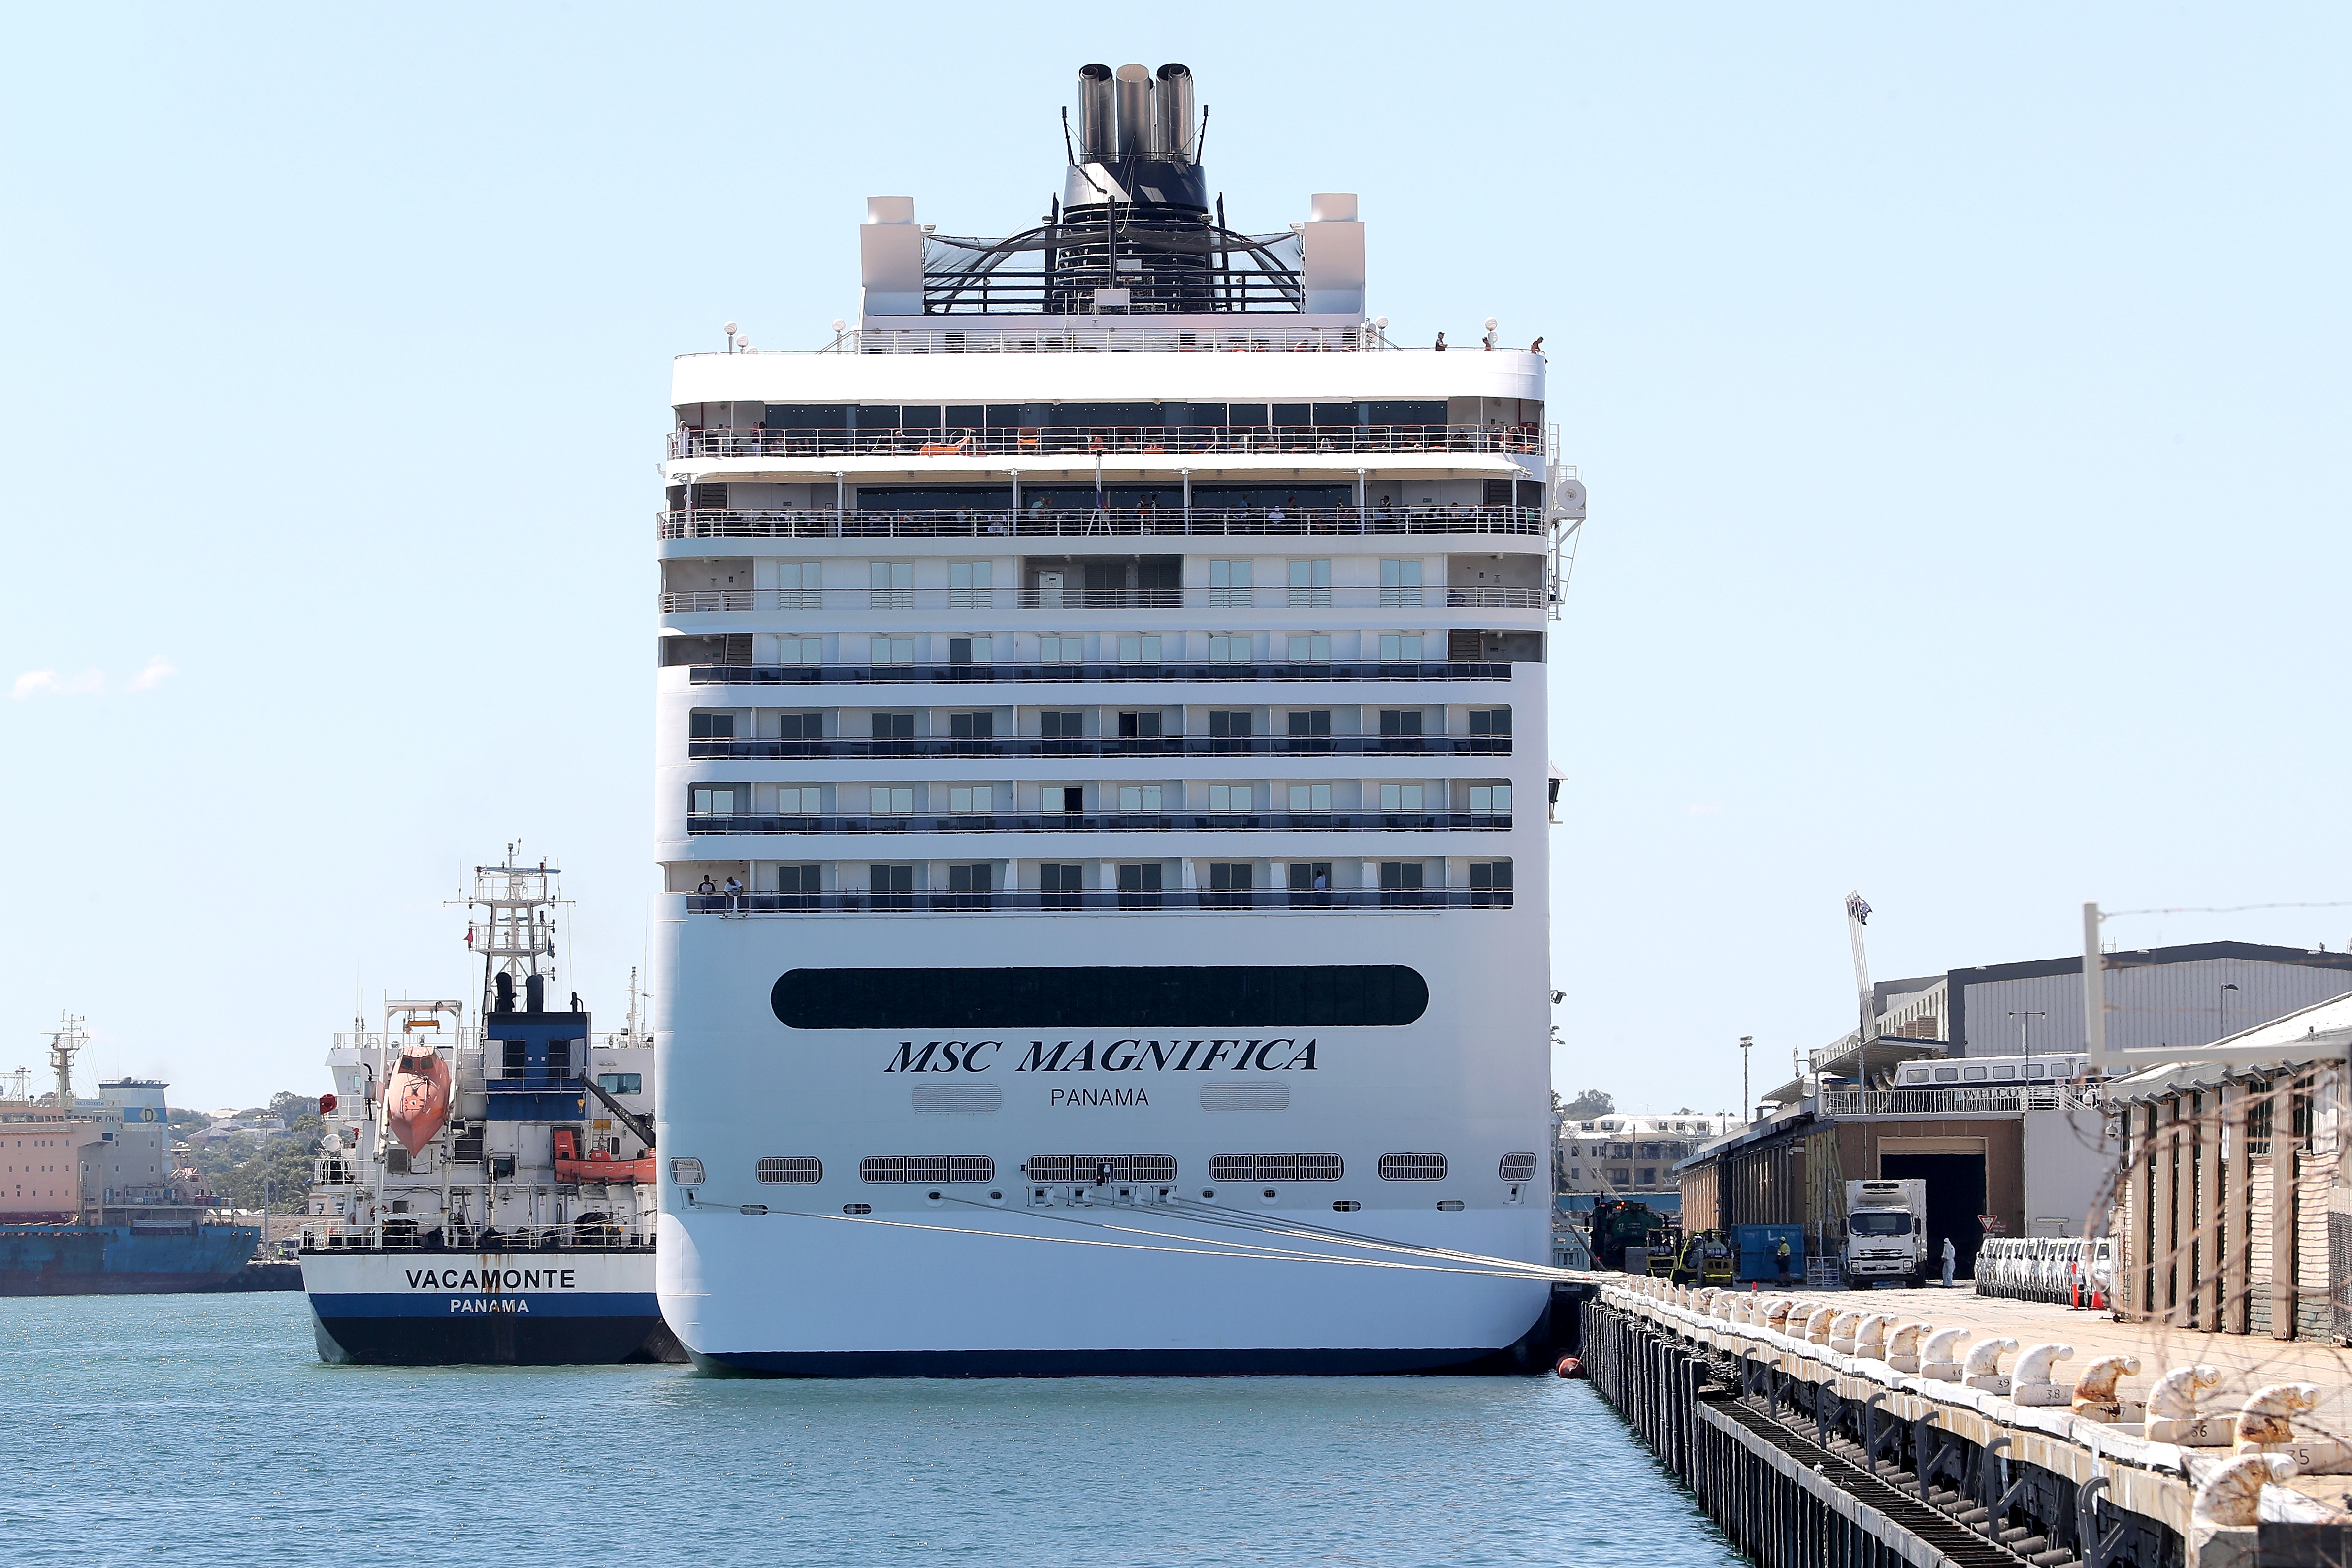 The MSC Magnifica cruise ship is seen docked in Fremantle Harbour near Perth, Australia, on March 24.